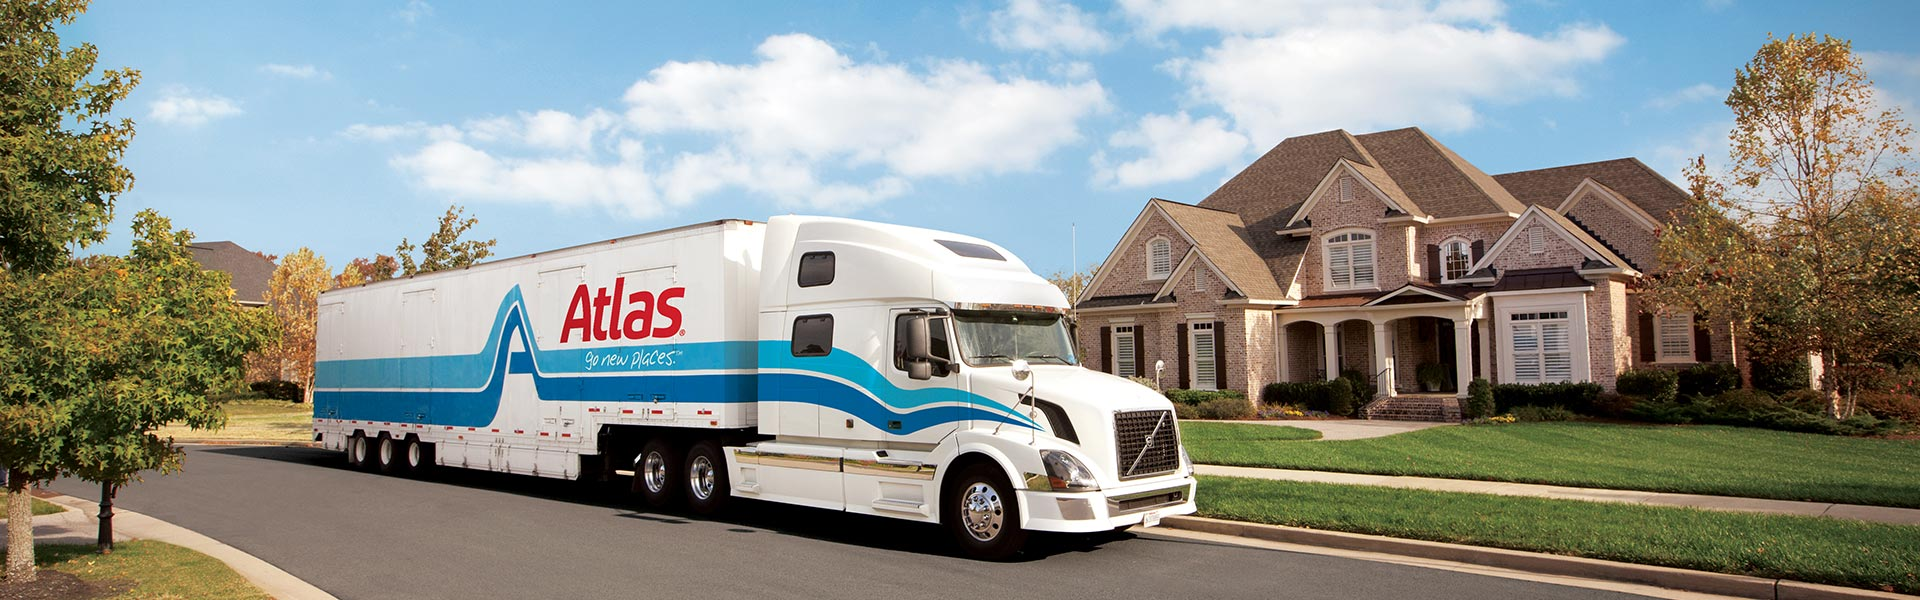 Atlas Van Lines household goods interstate moving and relocation services